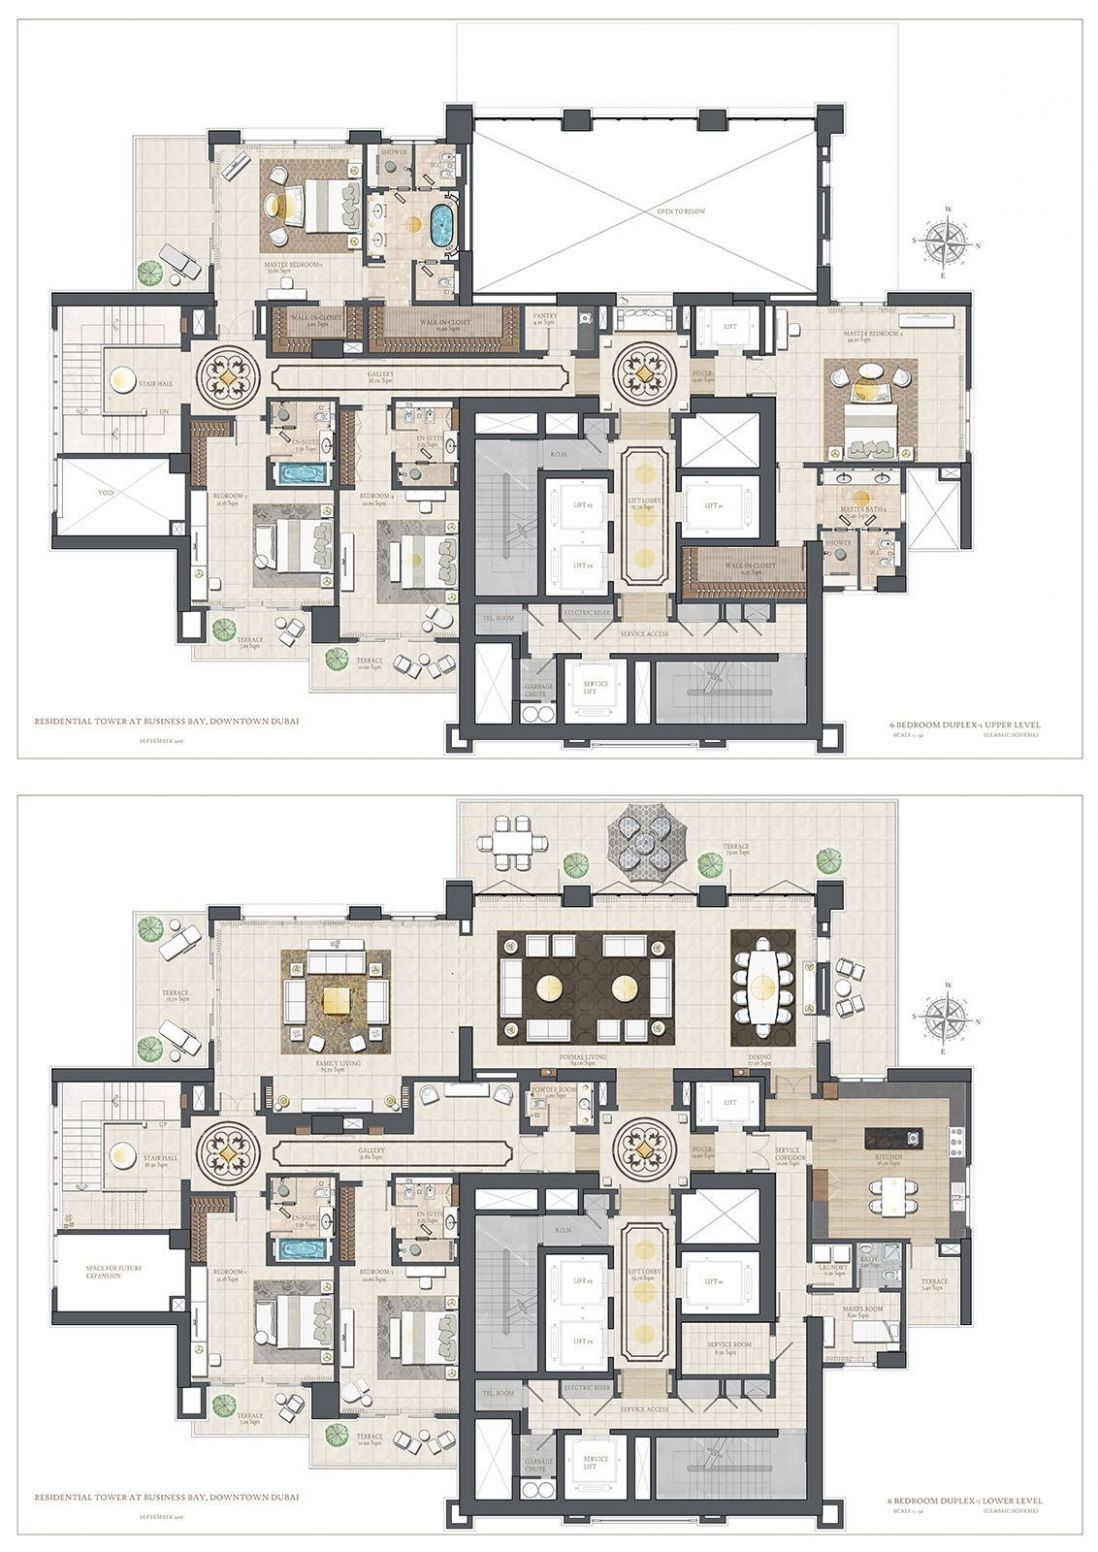 The 12 Downtown Dubai (With images) | Dream house plans, Mansion ..